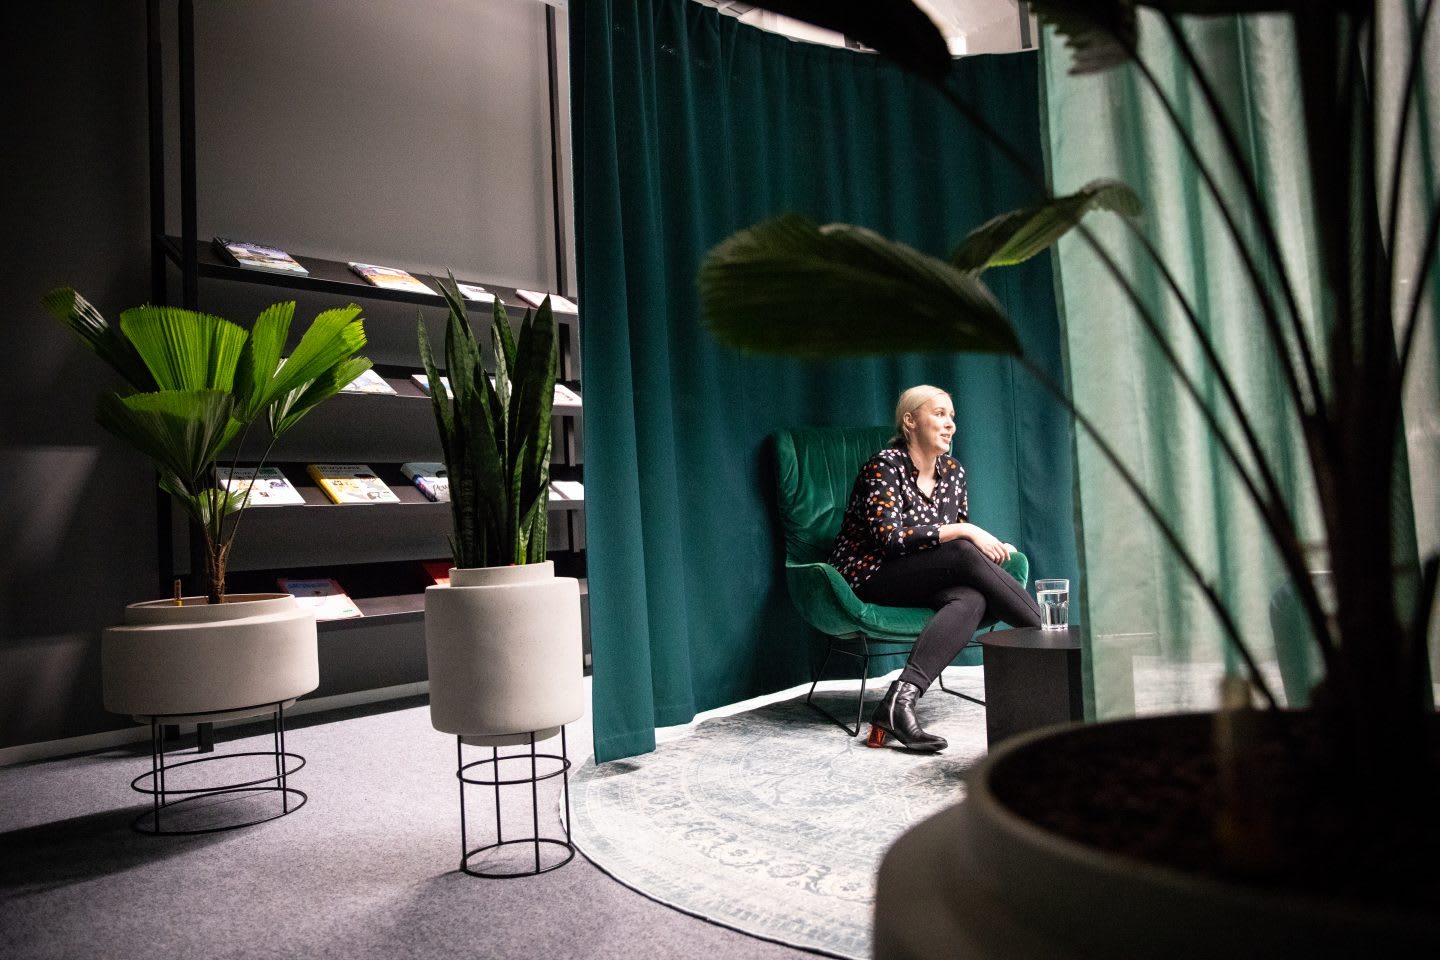 Tina in one of the adidas meeting rooms and a jungle environment gives an interview on her purpose and creativity. Marimekko, design, GamePlanA